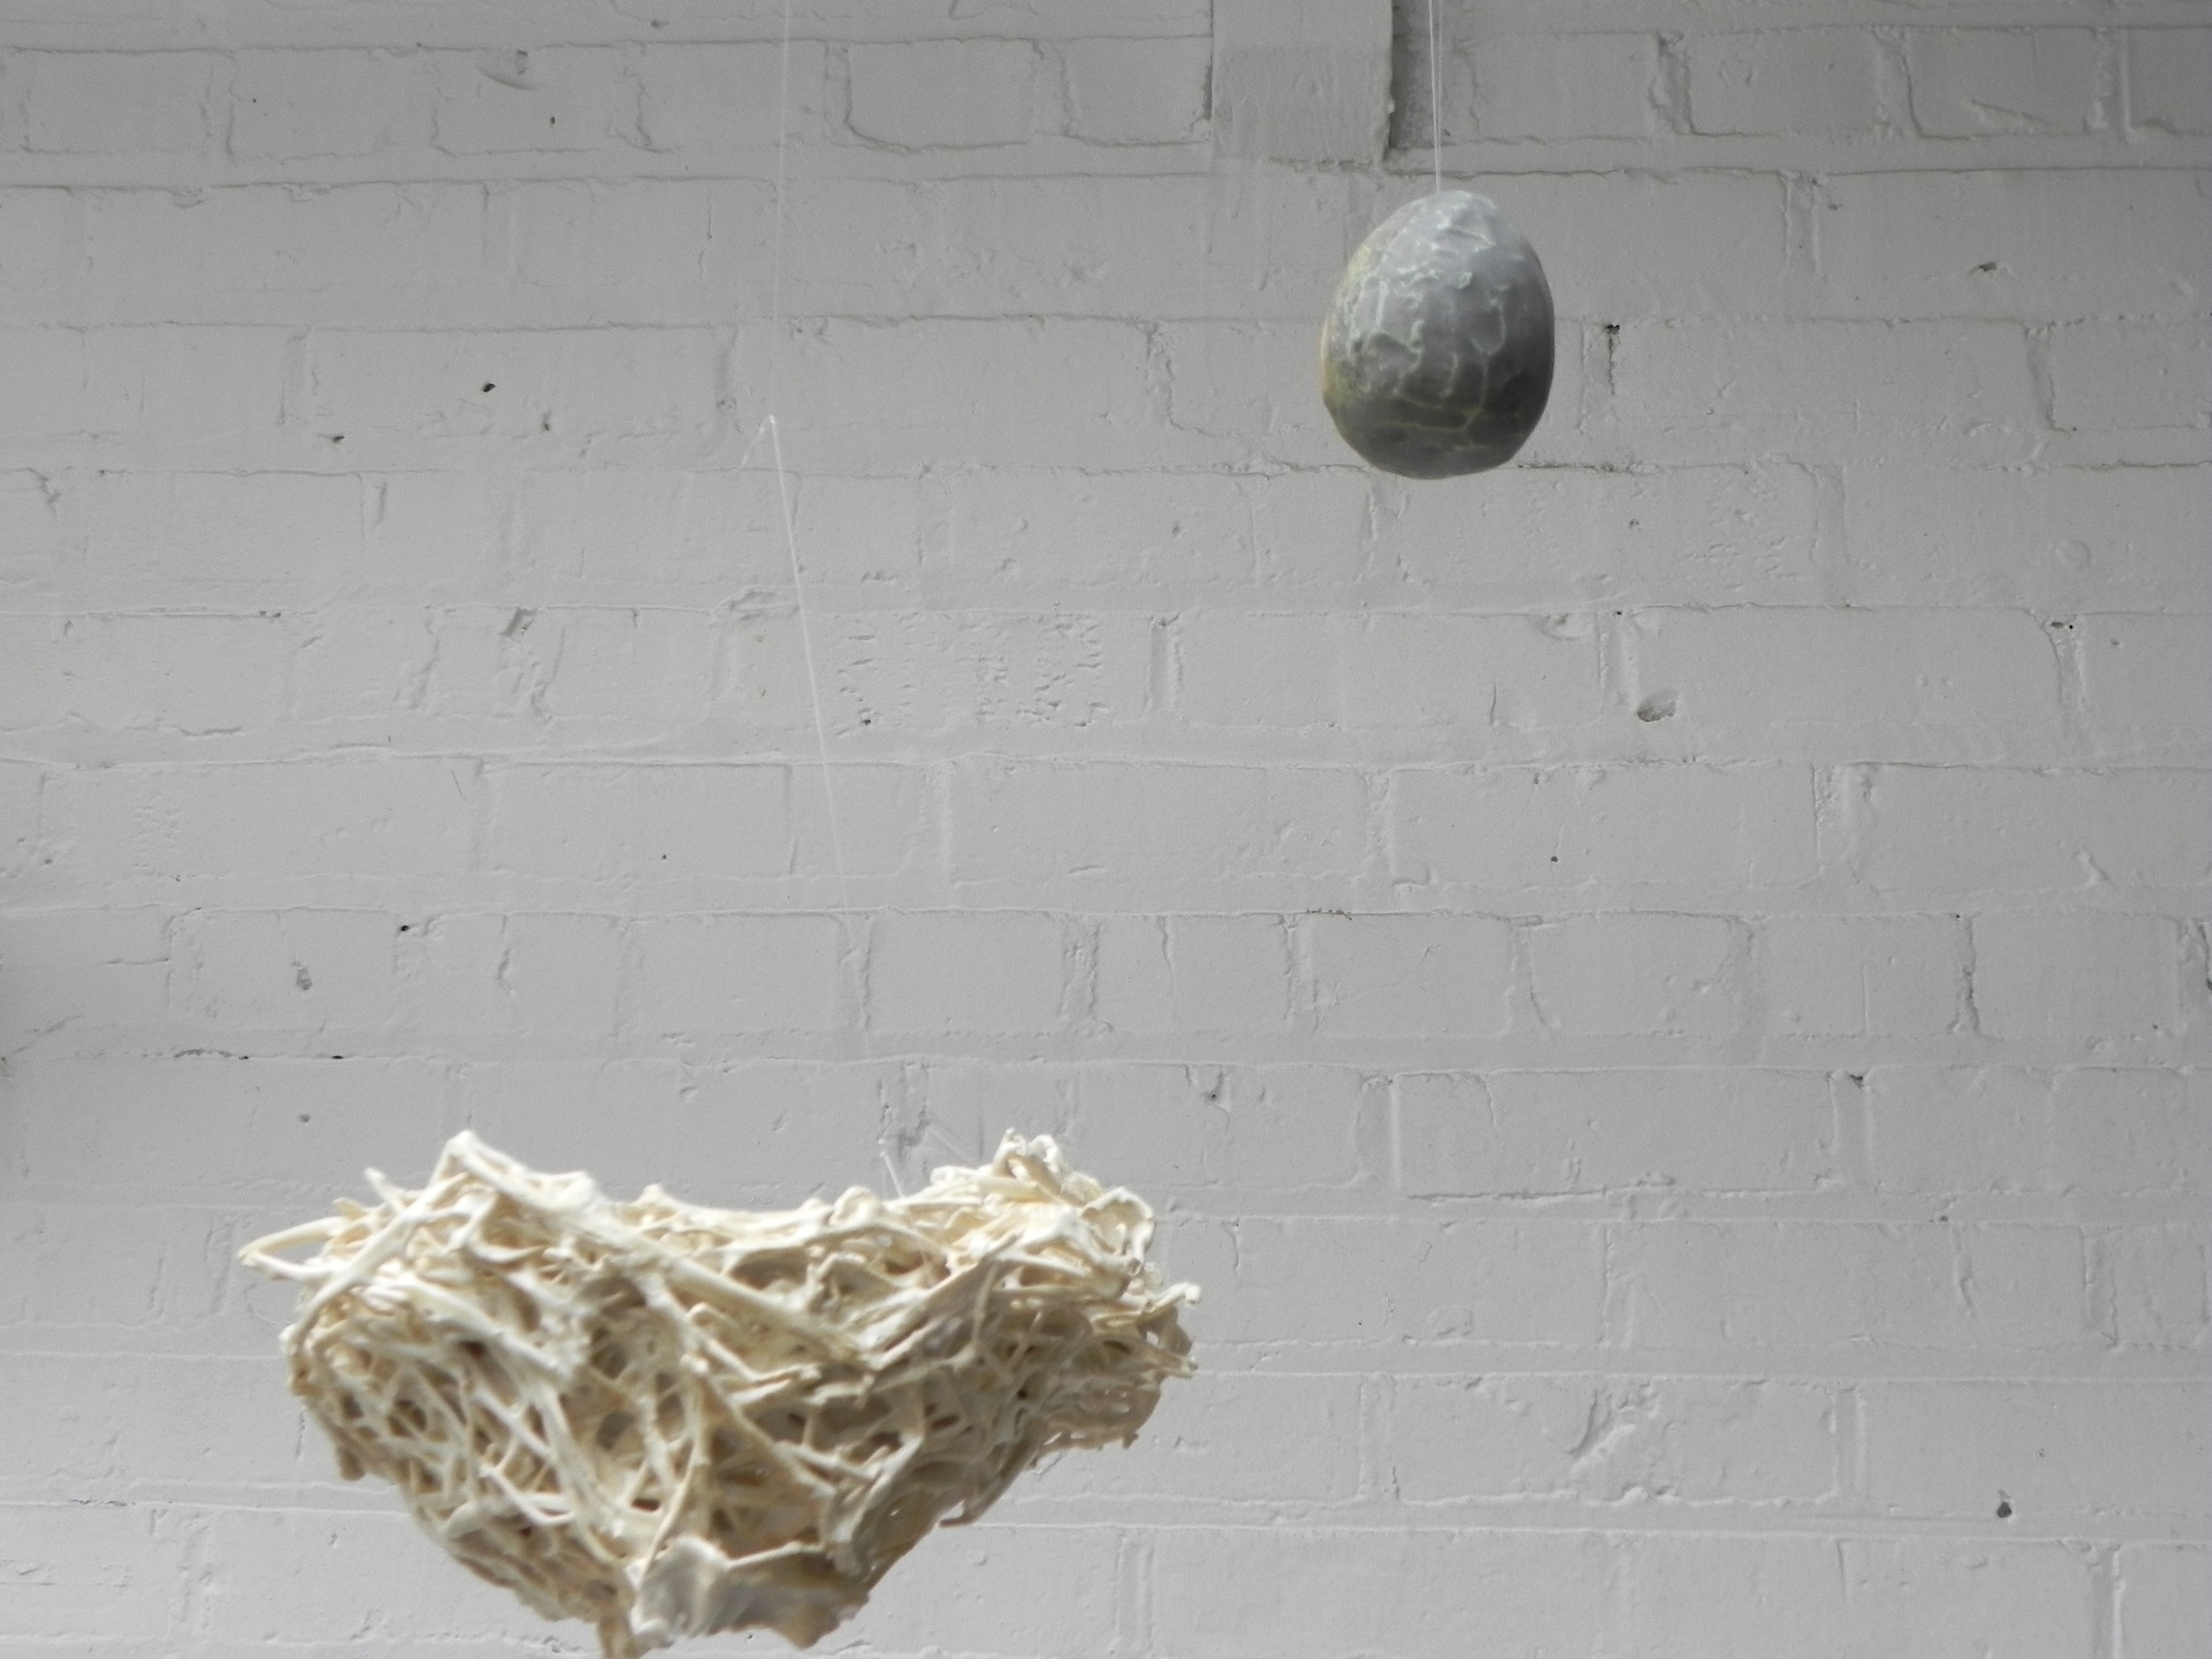 ceramic sculpture  suspended from ceiling  approx  24x 18 inches installed  october 2009